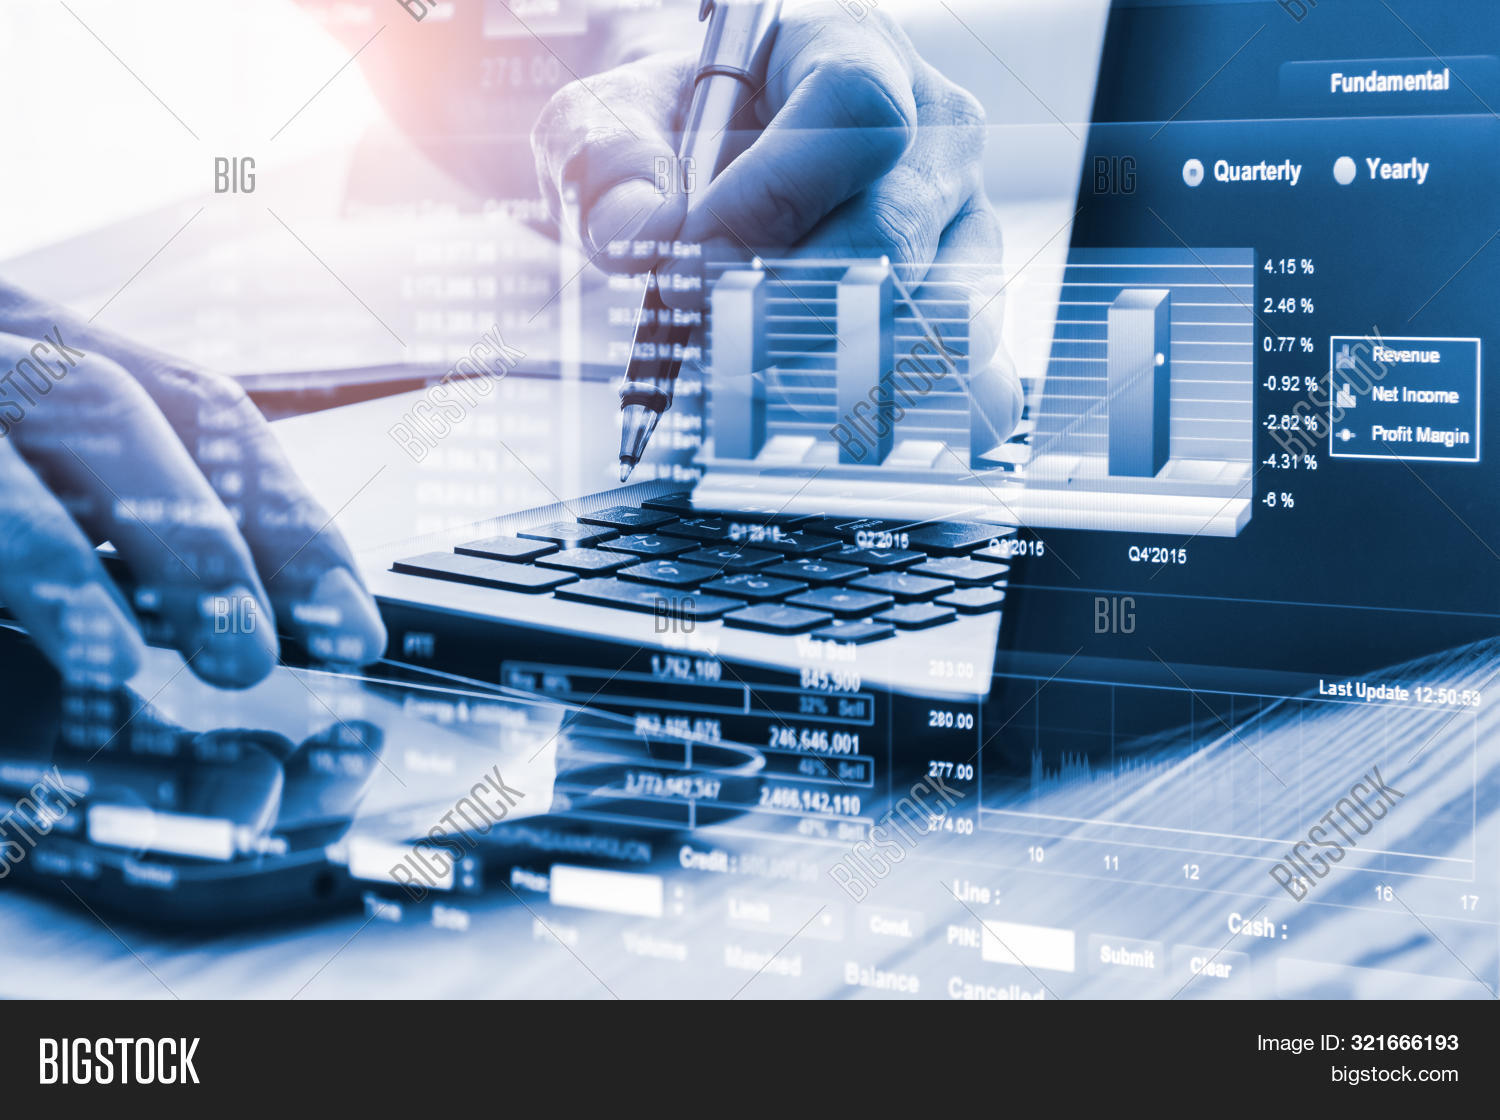 abstract,accounting,analysis,asset,background,bank,broker,business,chart,coins,commercial,concept,cost,currency,data,digital,display,earning,economic,economy,exchange,finance,financial,financier,forex,funds,global,graph,growth,index,indicator,information,internet,investment,management,market,marketing,money,profit,rate,sell,statistic,stock,street,technology,ticker,trade,trends,voorraad,wall